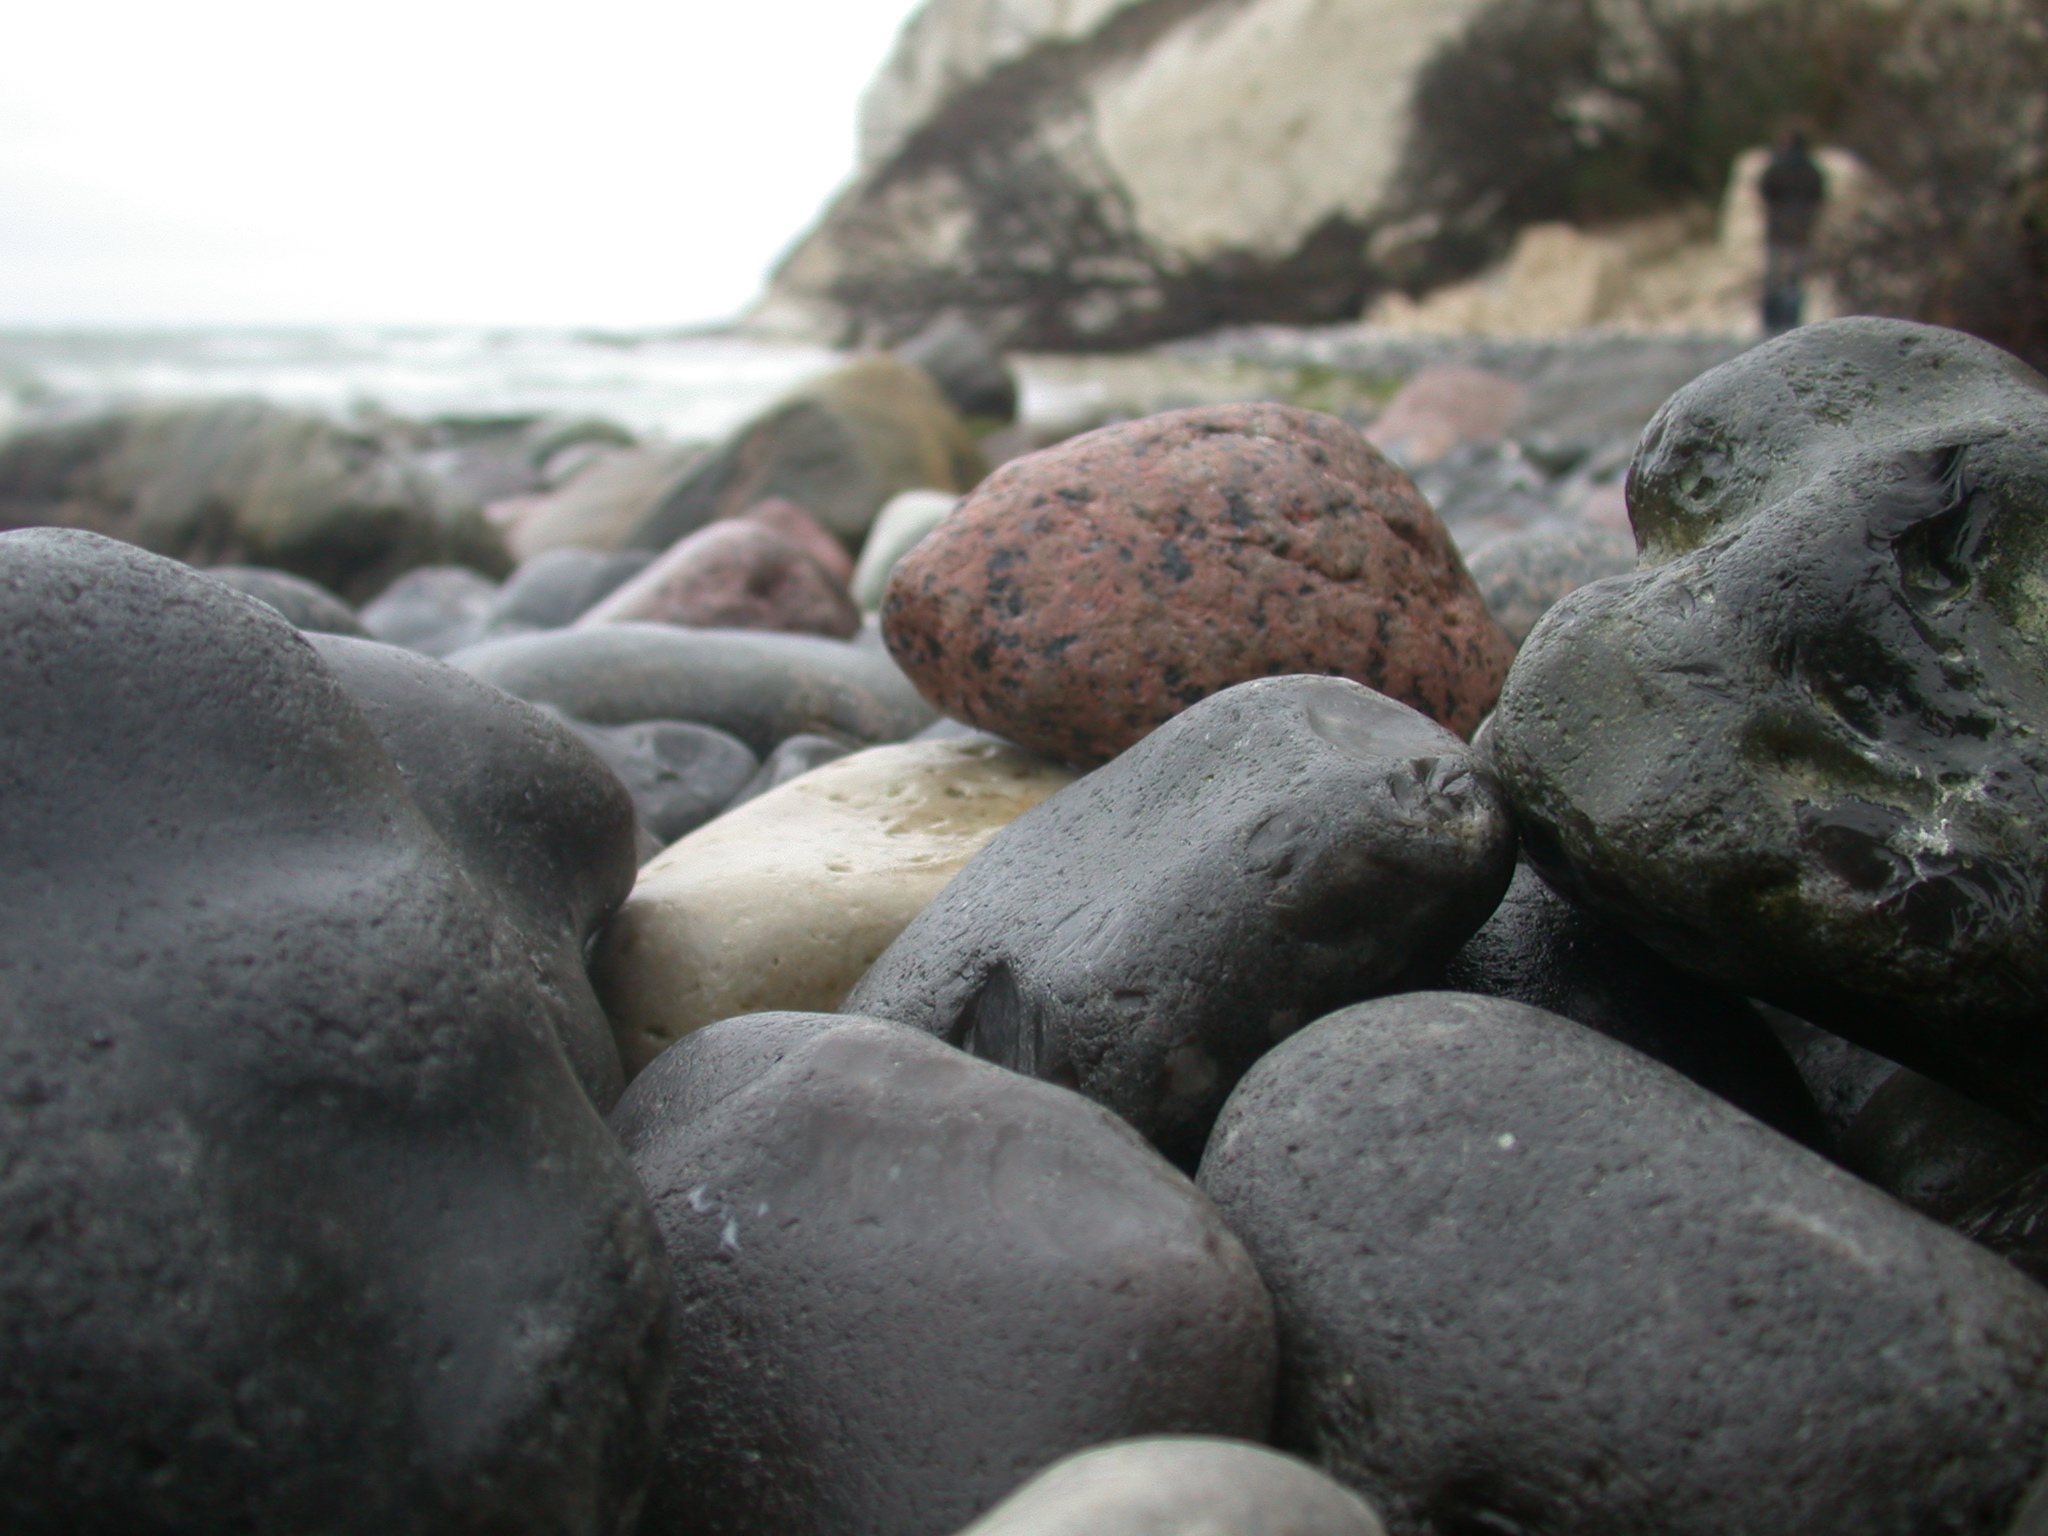 janneke pebbles rocks beach stones royalty free